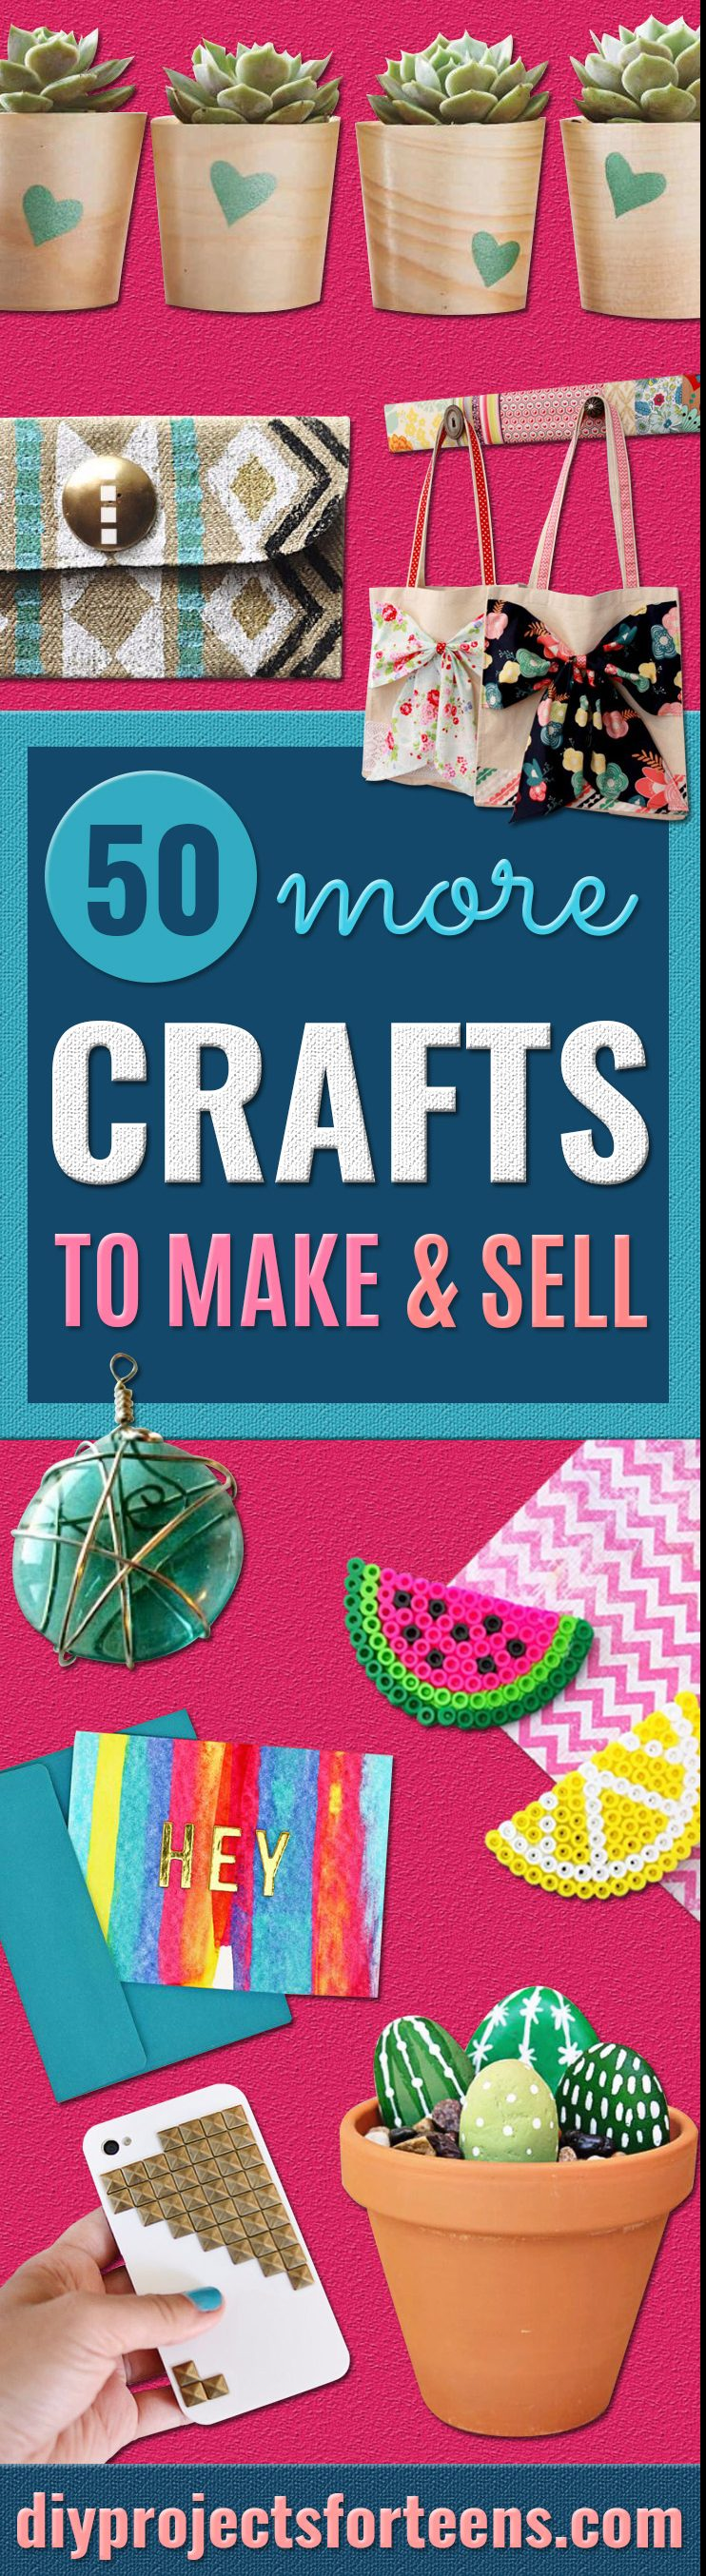 50 Easy Crafts to Make and Sell for Teens